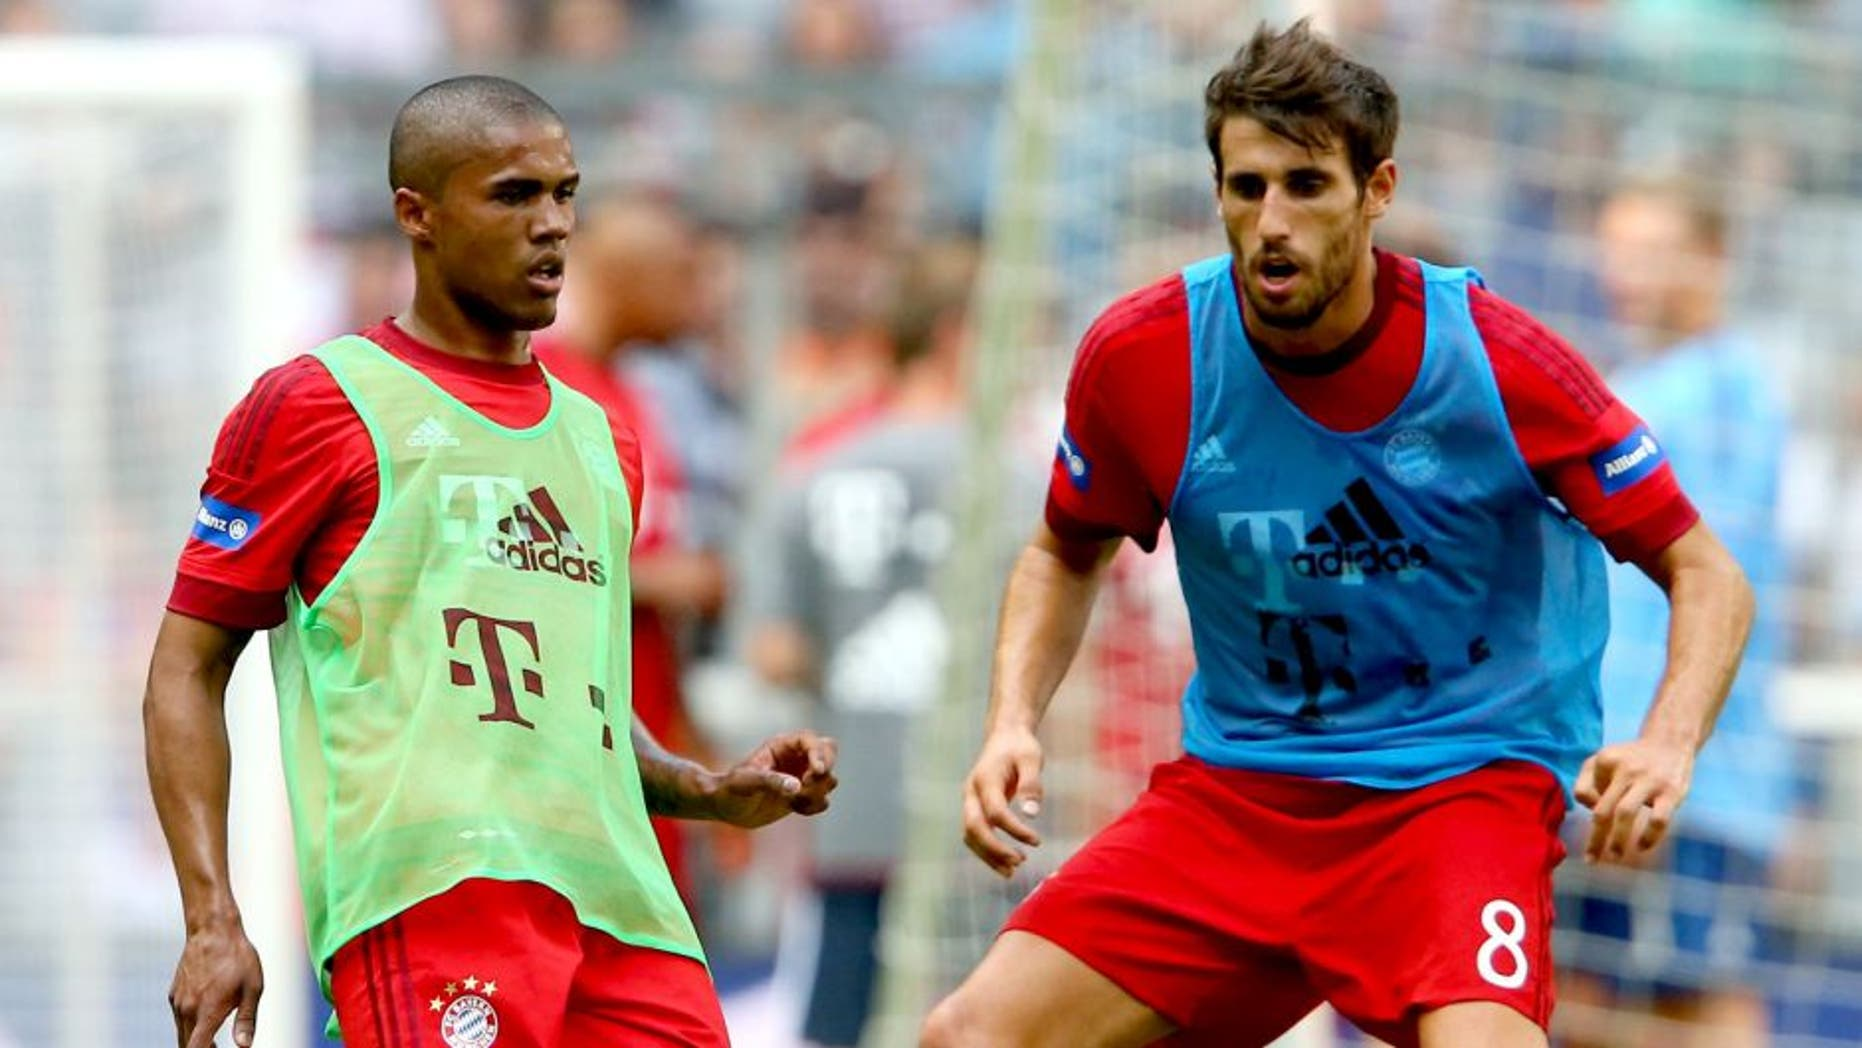 MUNICH, GERMANY - JULY 11: Douglas Costa (L) battles for the ball with Javier Martinez during a training session after the FC Bayern Muenchen season opening and team presentation at Allianz Arena on July 11, 2015 in Munich, Germany. (Photo by Alexander Hassenstein/Bongarts/Getty Images)